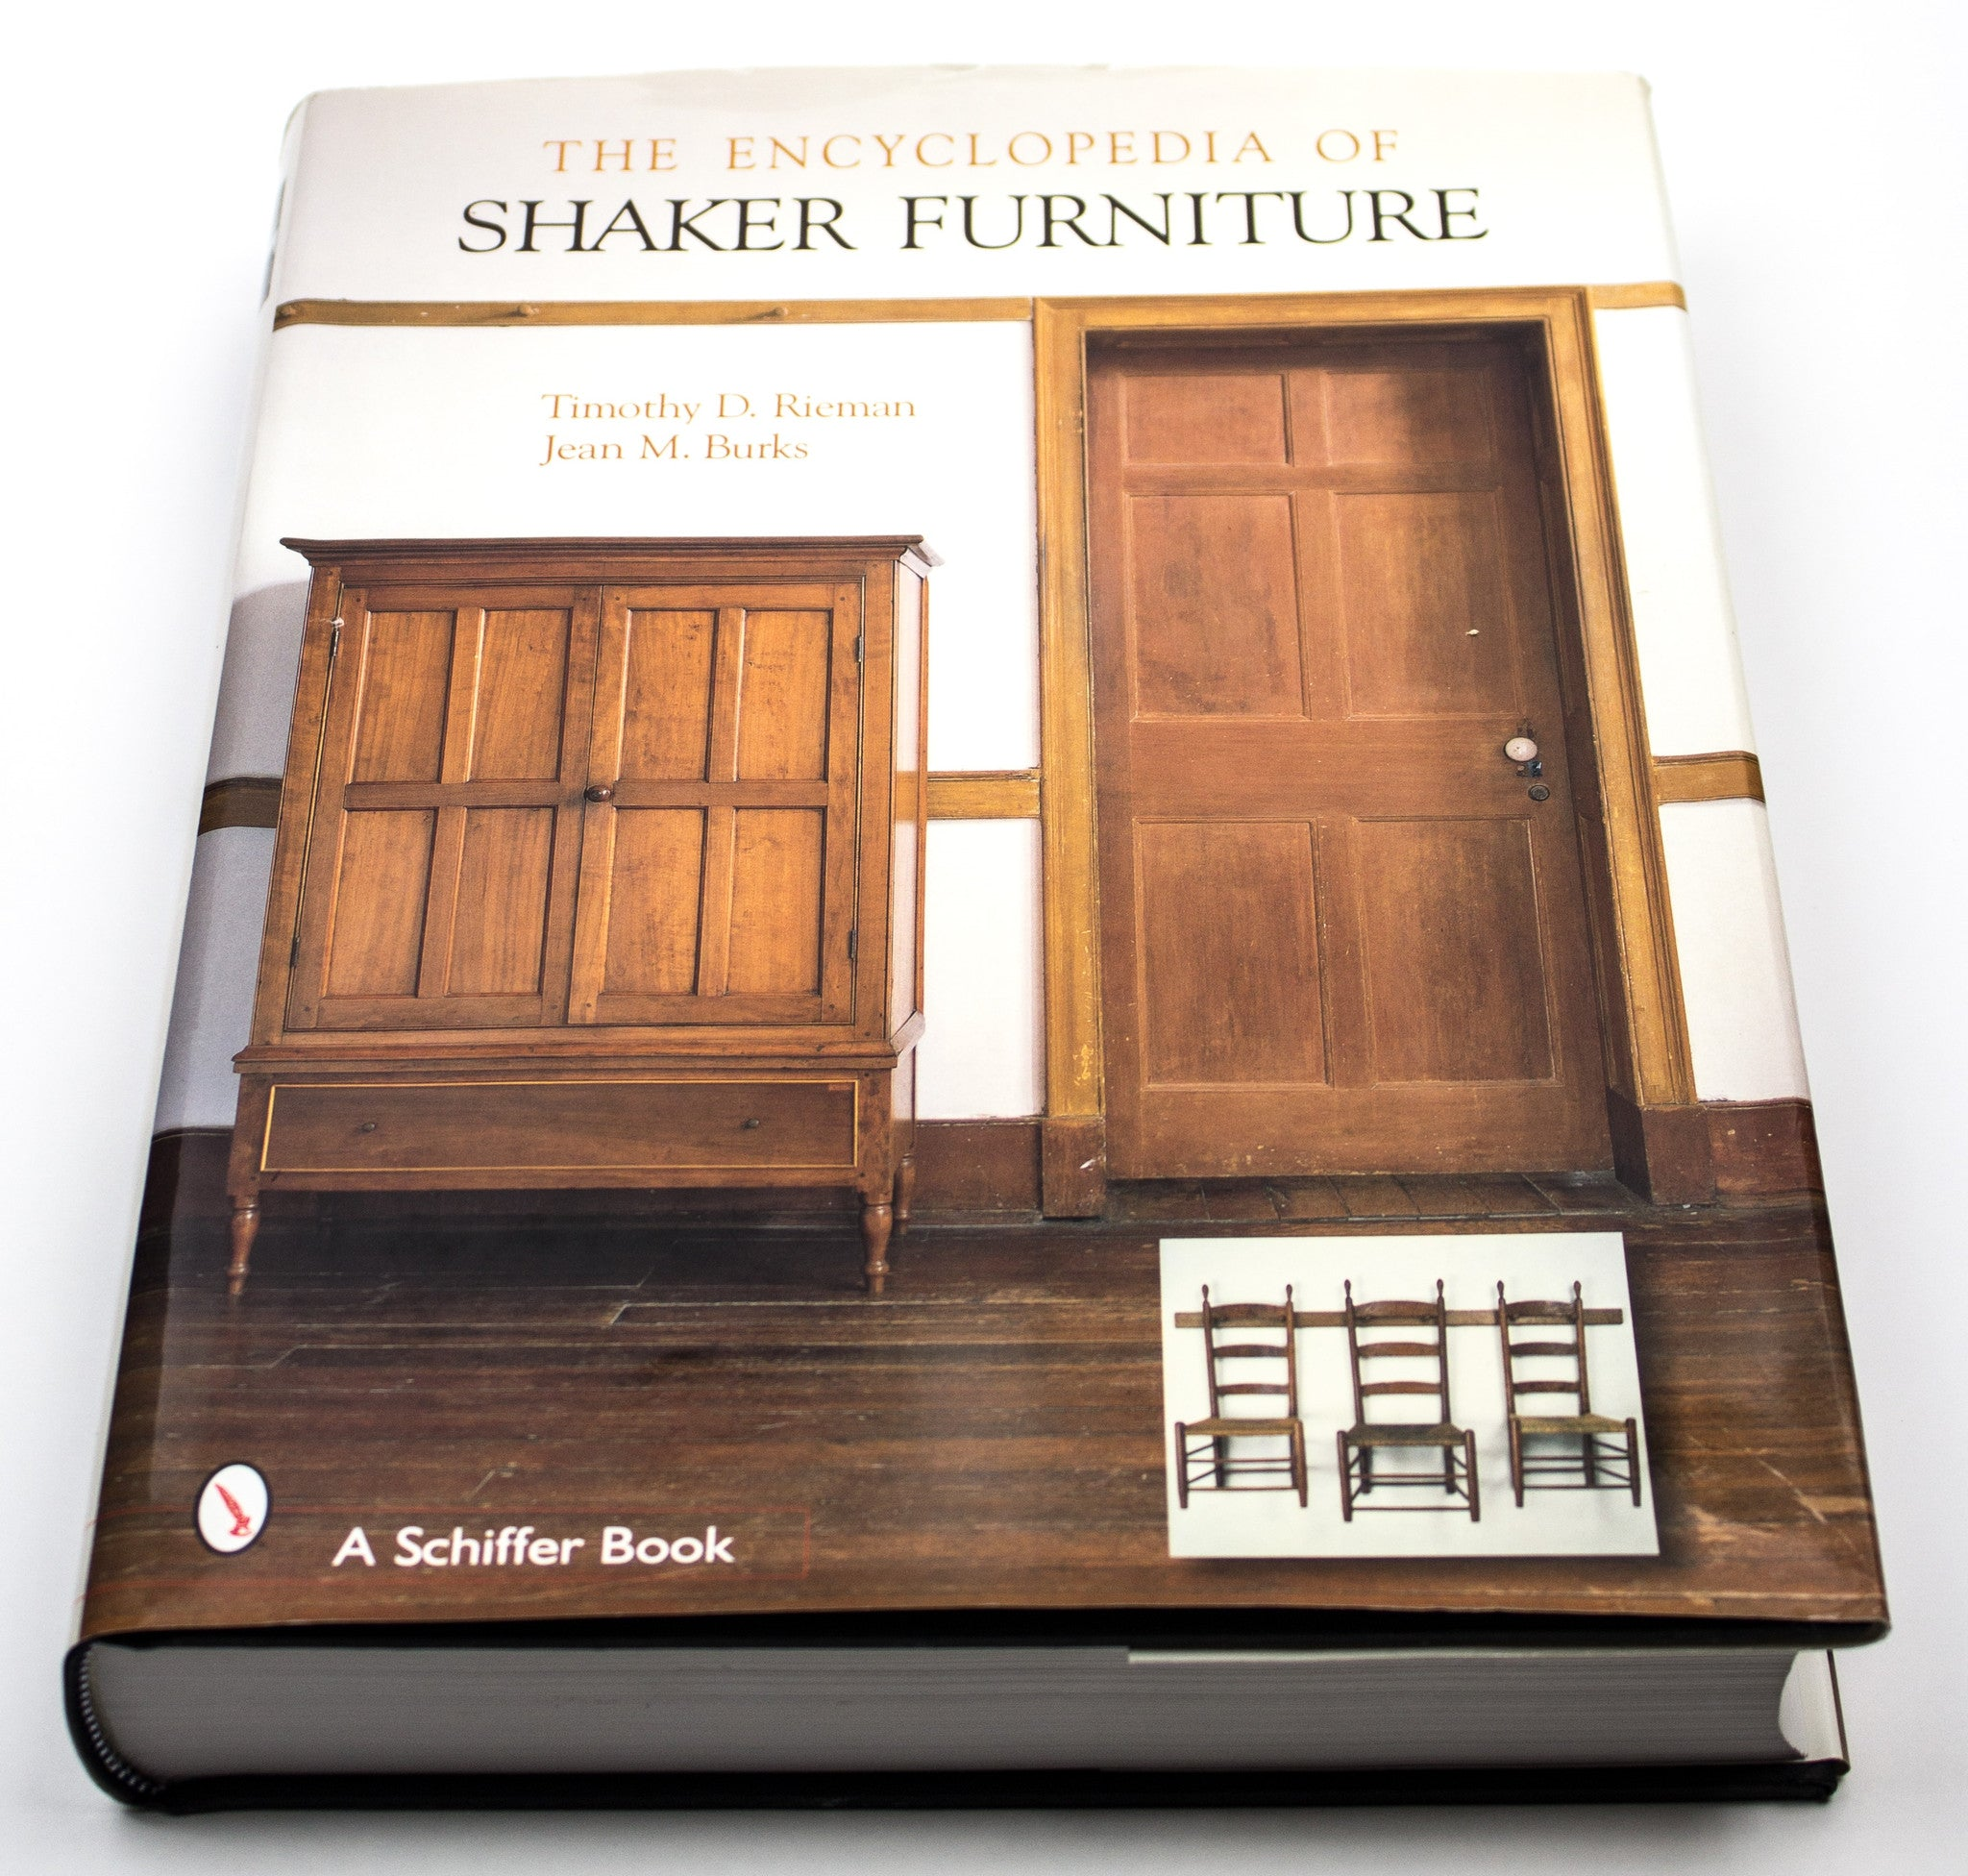 The Encyclopedia of Shaker Furniture